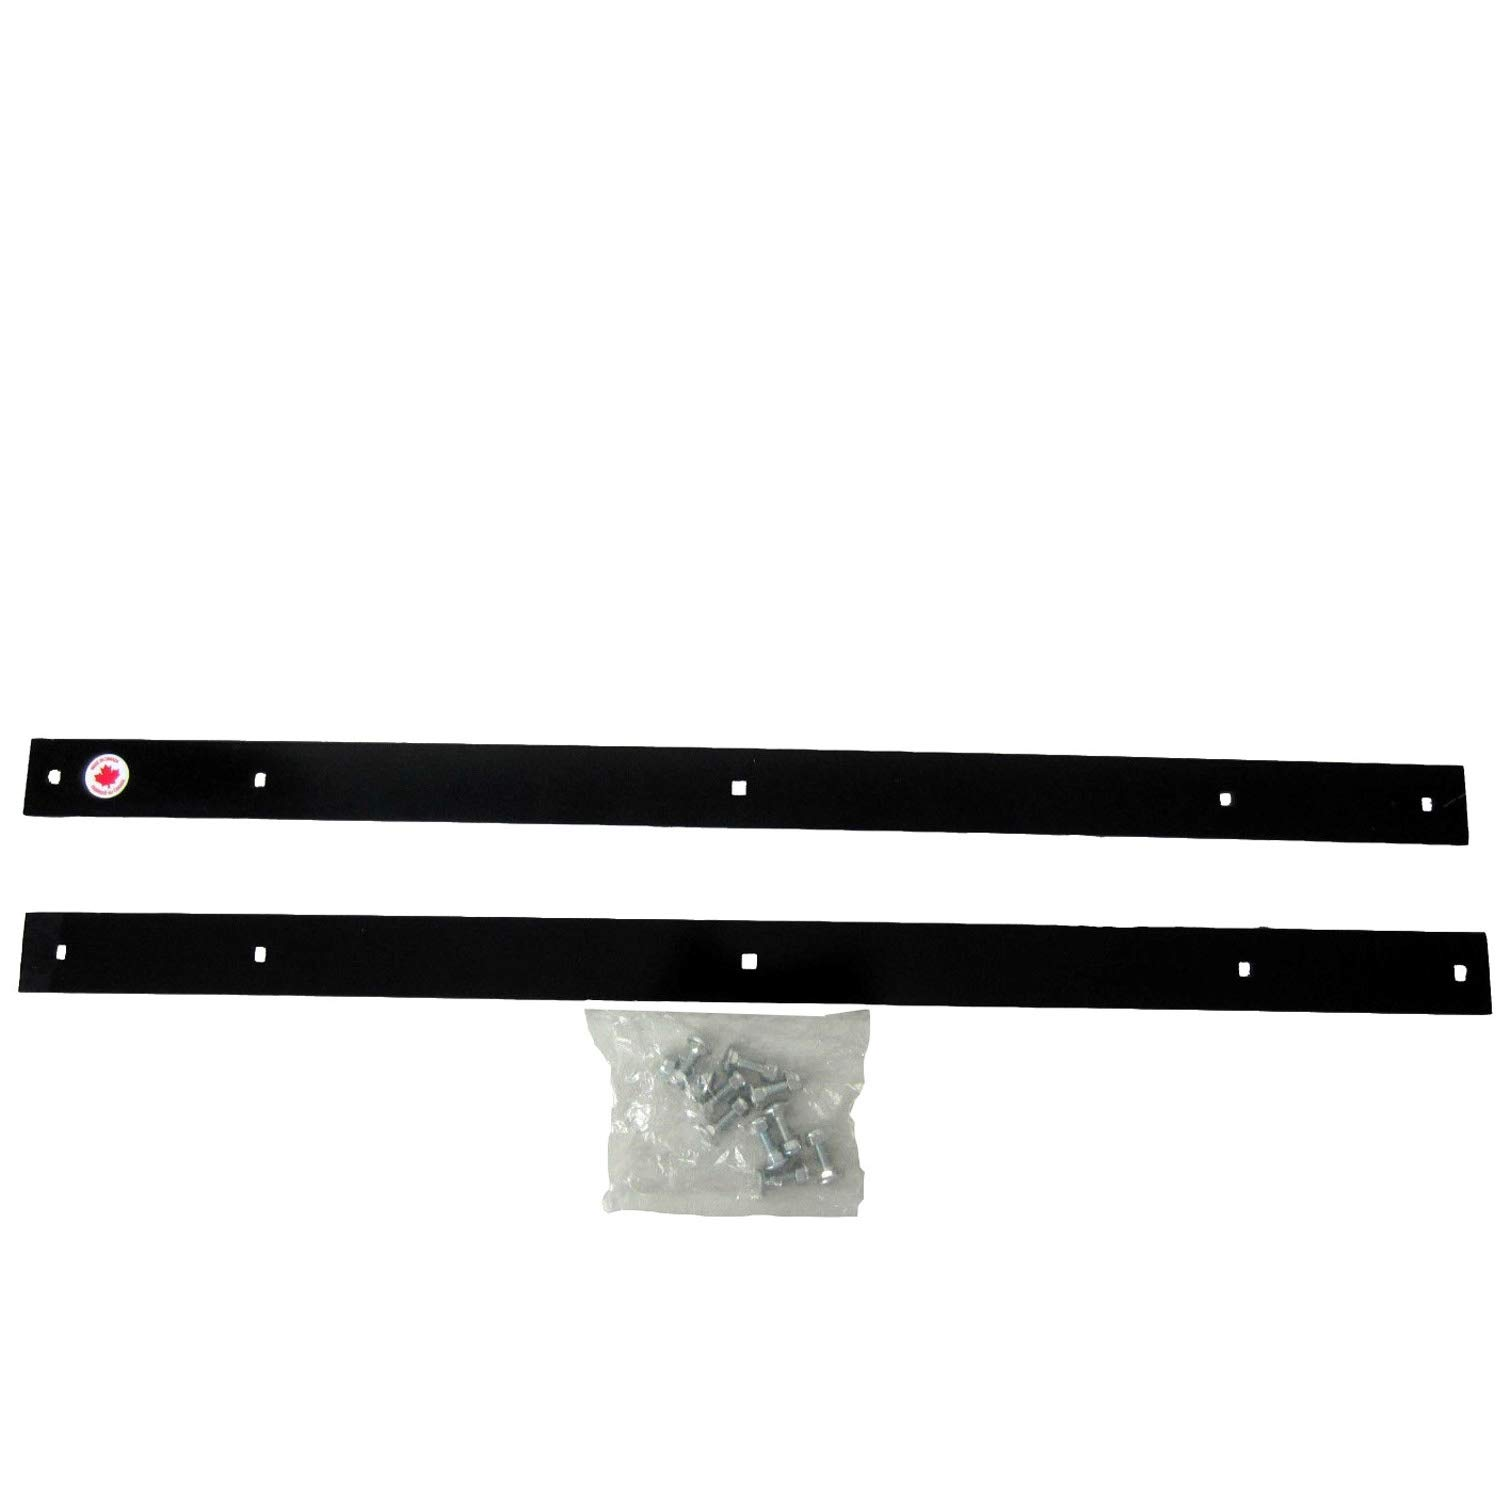 Polaris New OEM Ranger 72'' Snow Plow Blade Scraper Wear Bar Edge Kit 2875697-RWB by Polaris (Image #2)